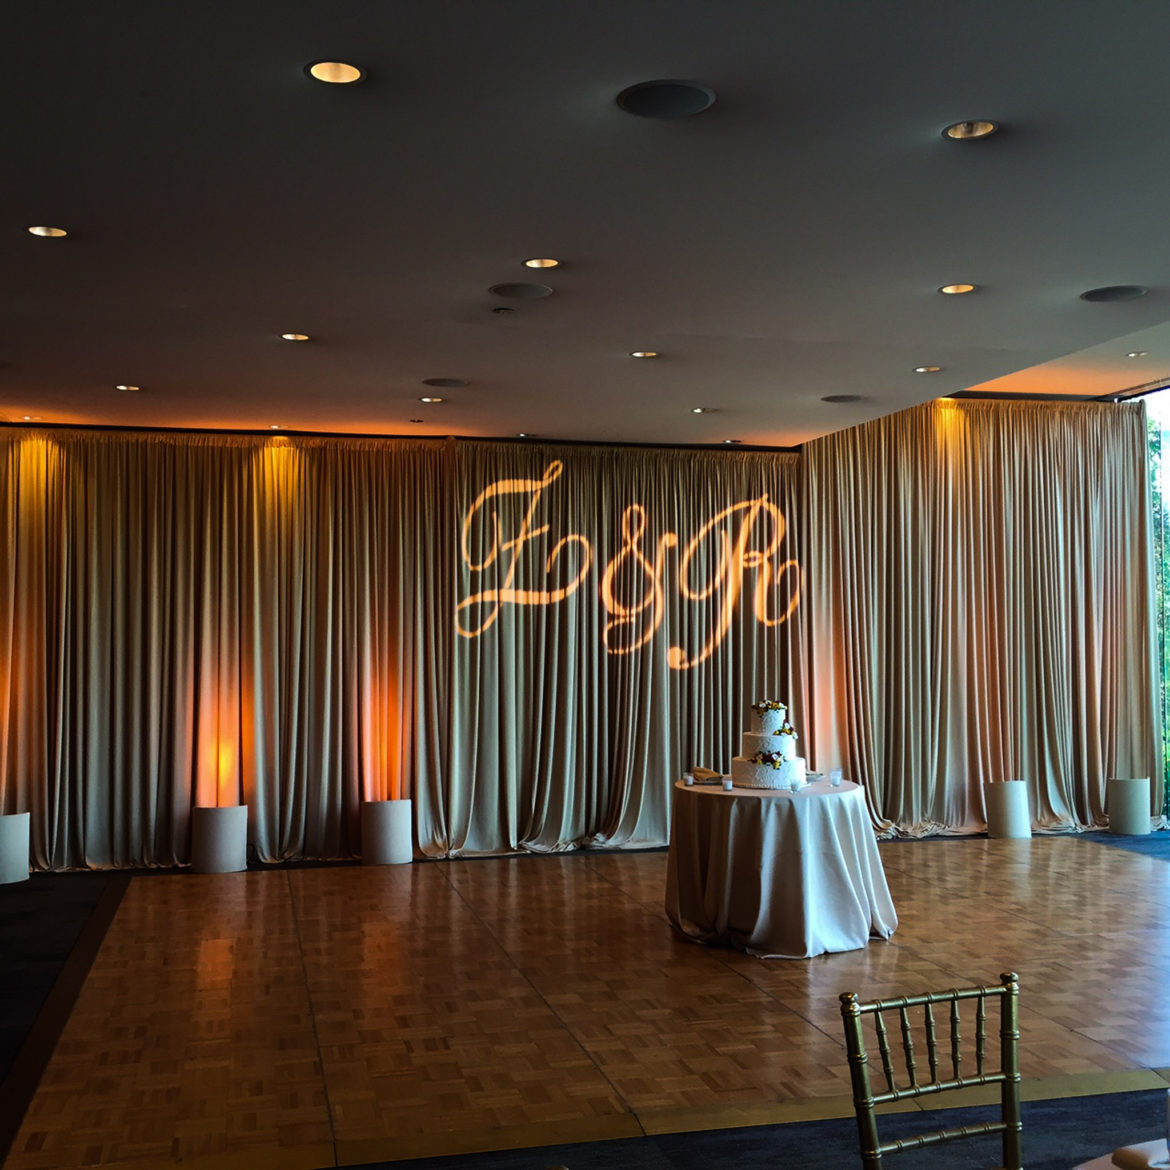 Elegant_Event_Lighting_Chicago_The_Morton_Arboretum_Lisle_Ginko_Room__Wedding_.Champagne_Draping_Amber_Uplighting_Monogram